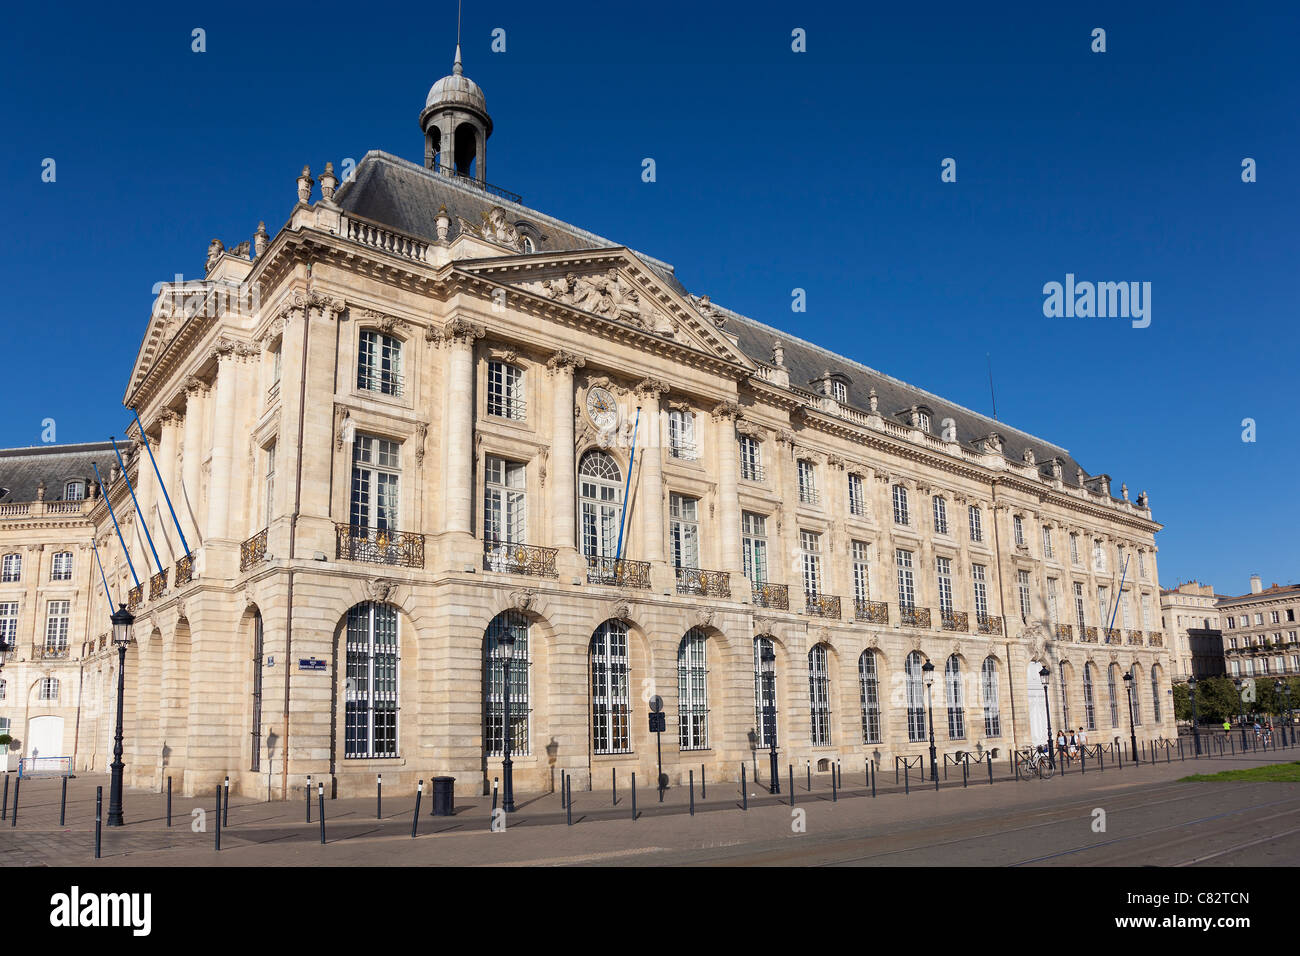 Building in the Square of the Bourse, Aquitaine, France Stock Photo